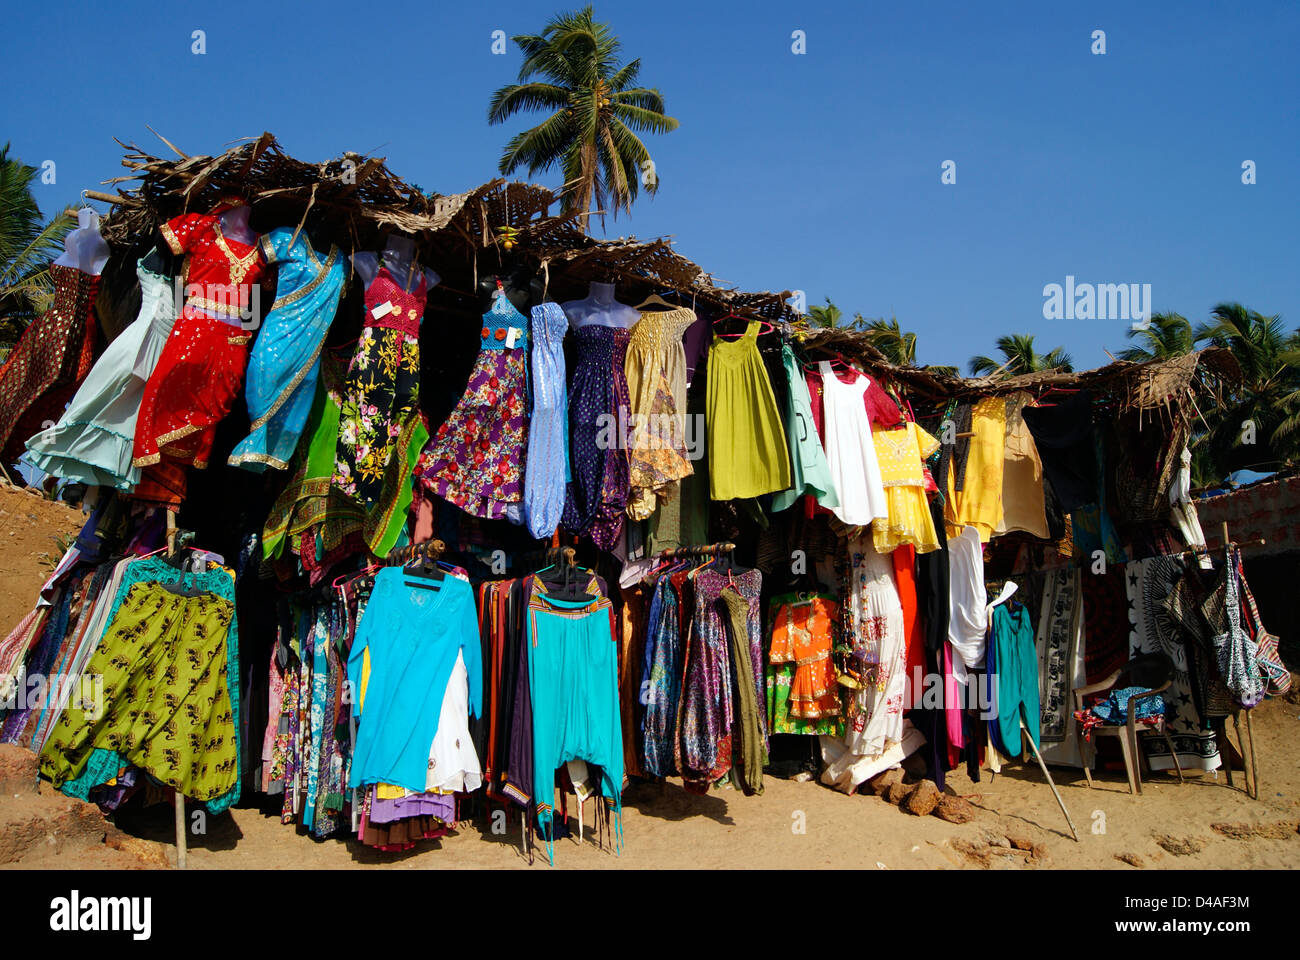 Beach clothes stores